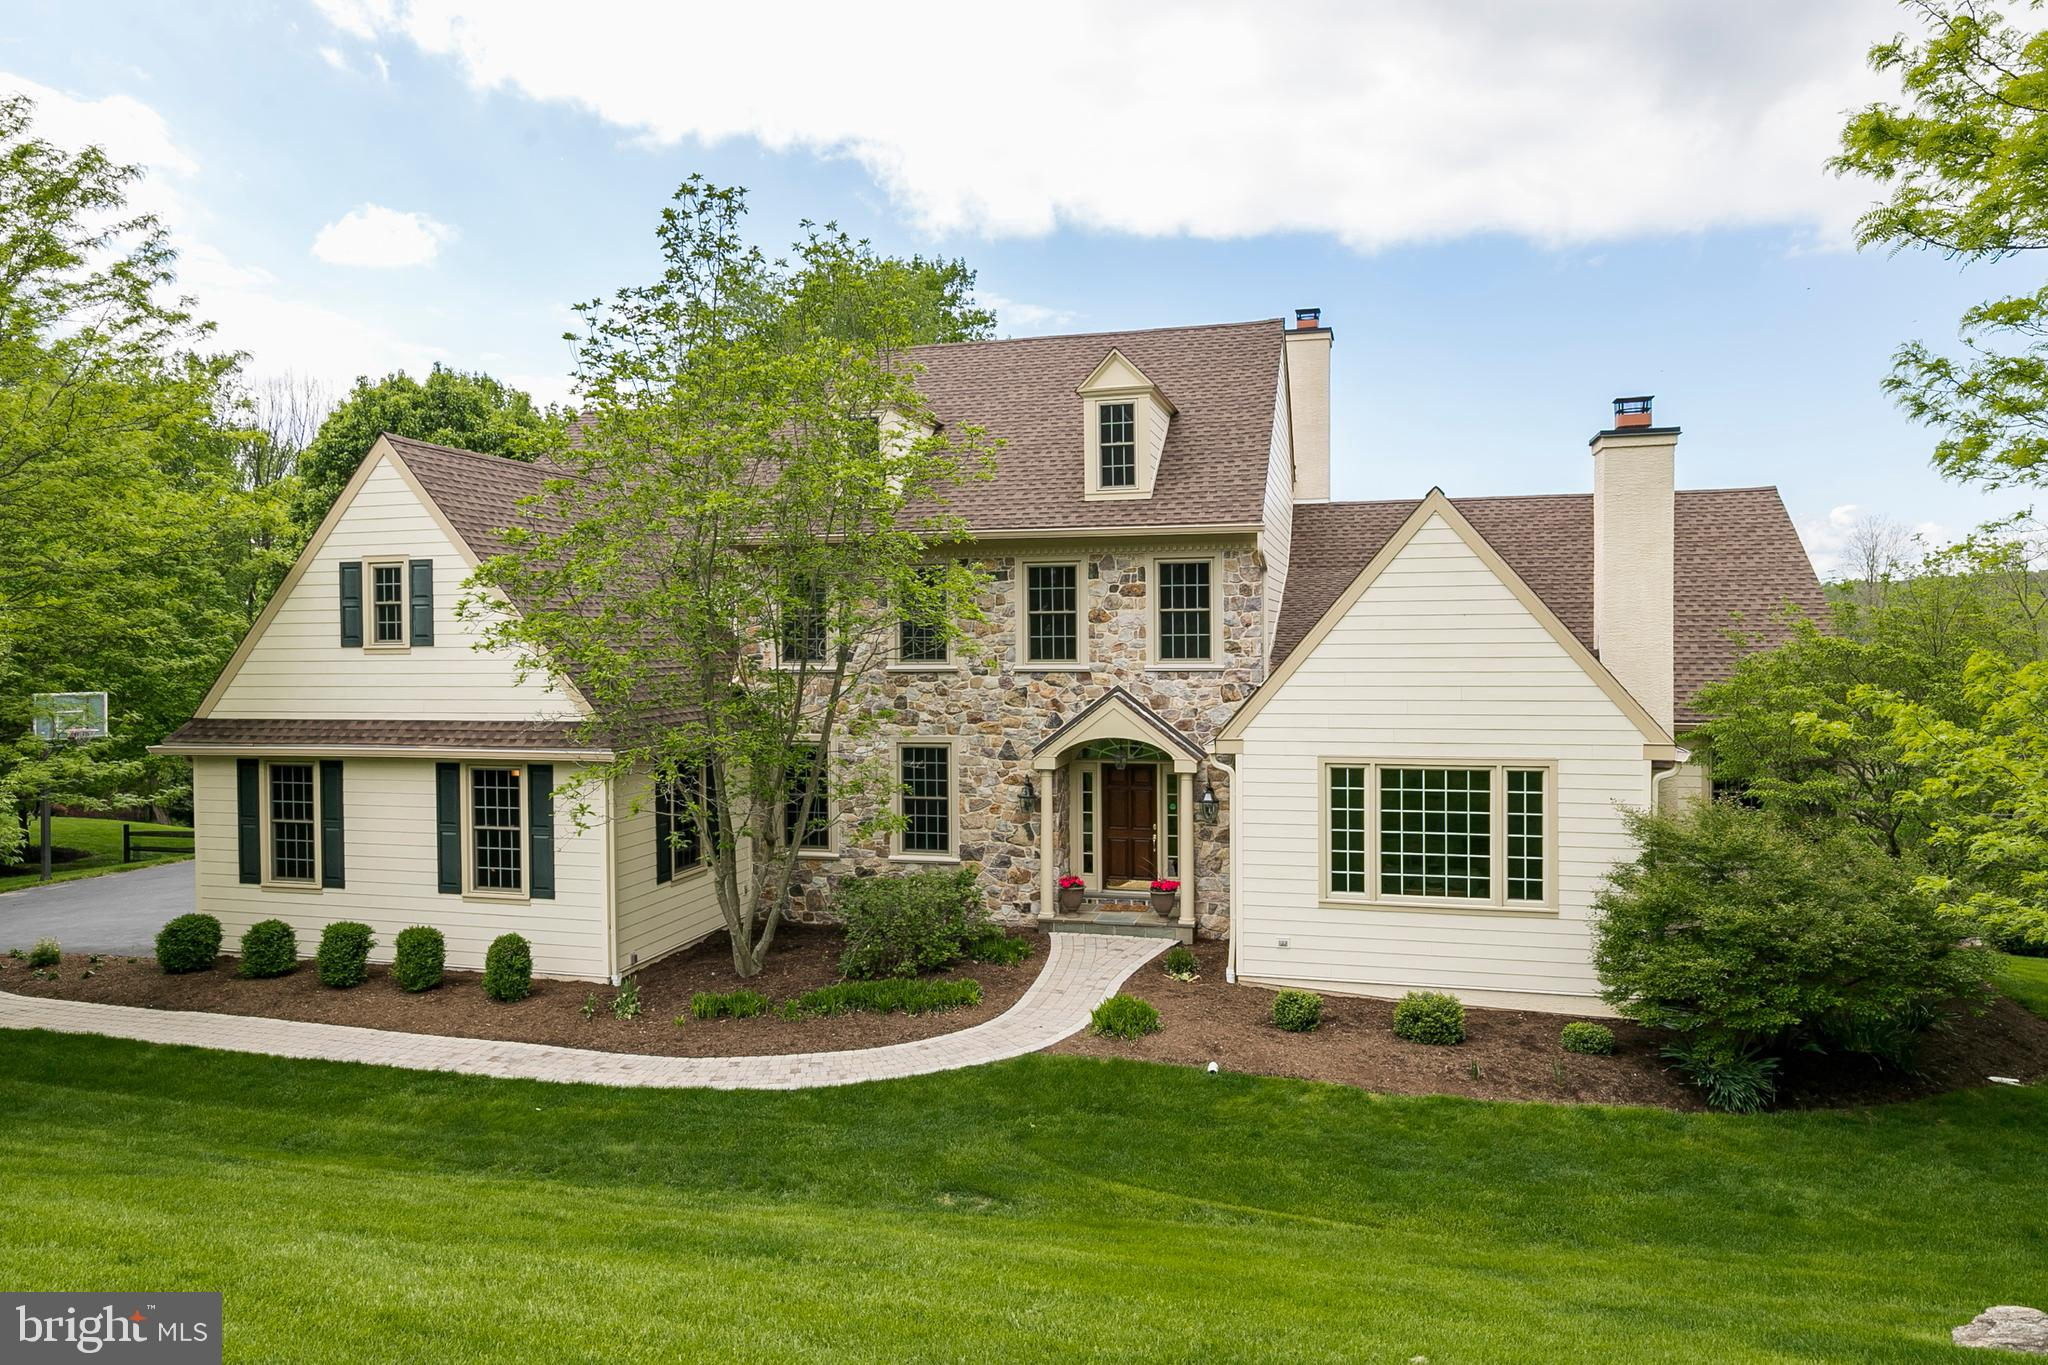 928 COPES LANE, WEST CHESTER, PA 19380